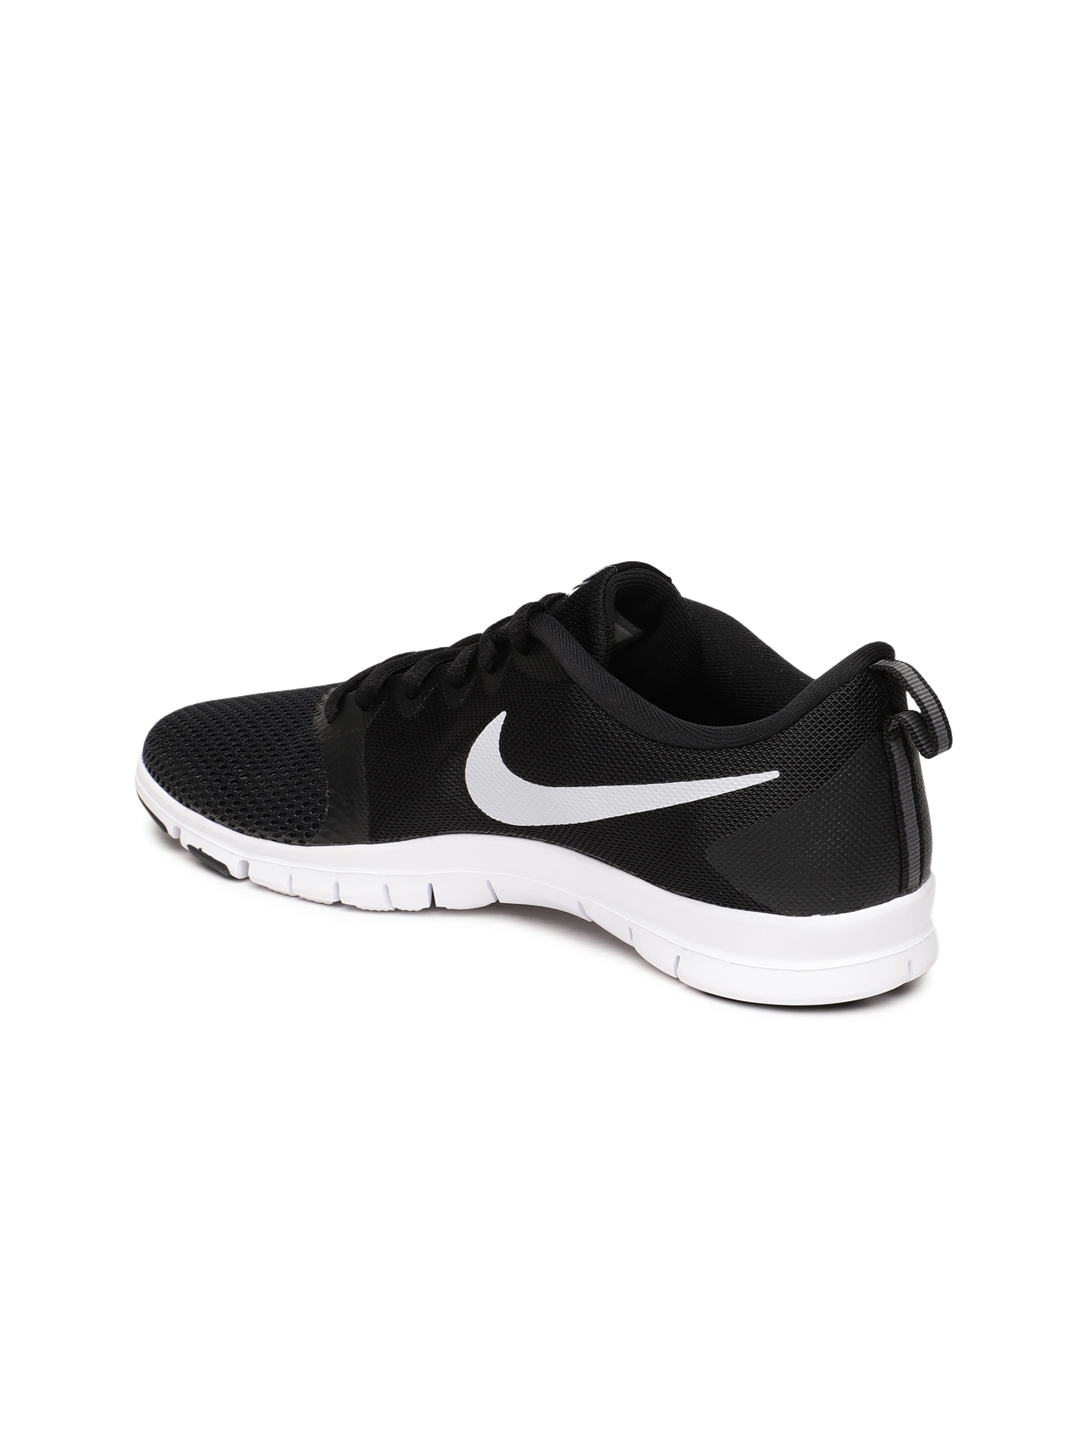 94b500464207 Buy Nike Women Black Free RN 2018 Running Shoes - Sports Shoes for ...